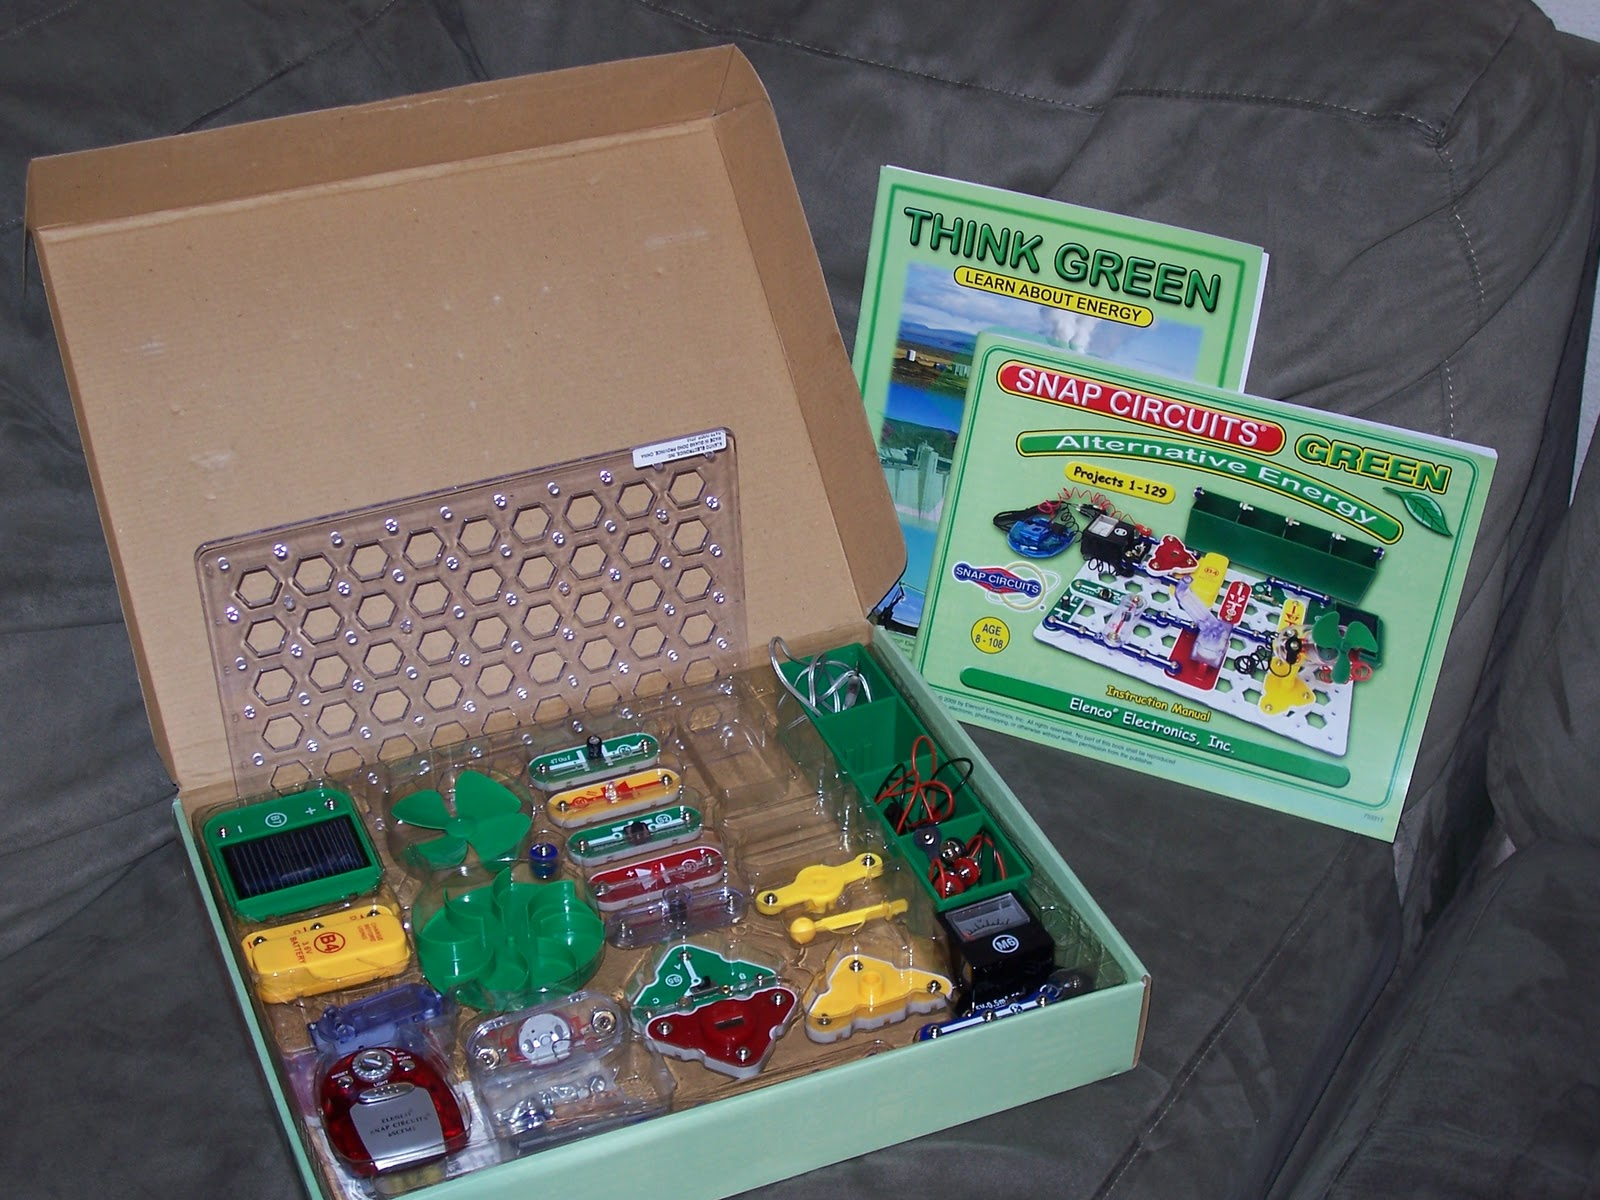 Home Snap Circuits Green Wiring Diagrams Sound Kit Image One Xumpcom Energy Circuit Lori S Lolz Rh Lorislolz Org Kits For Adults Motion